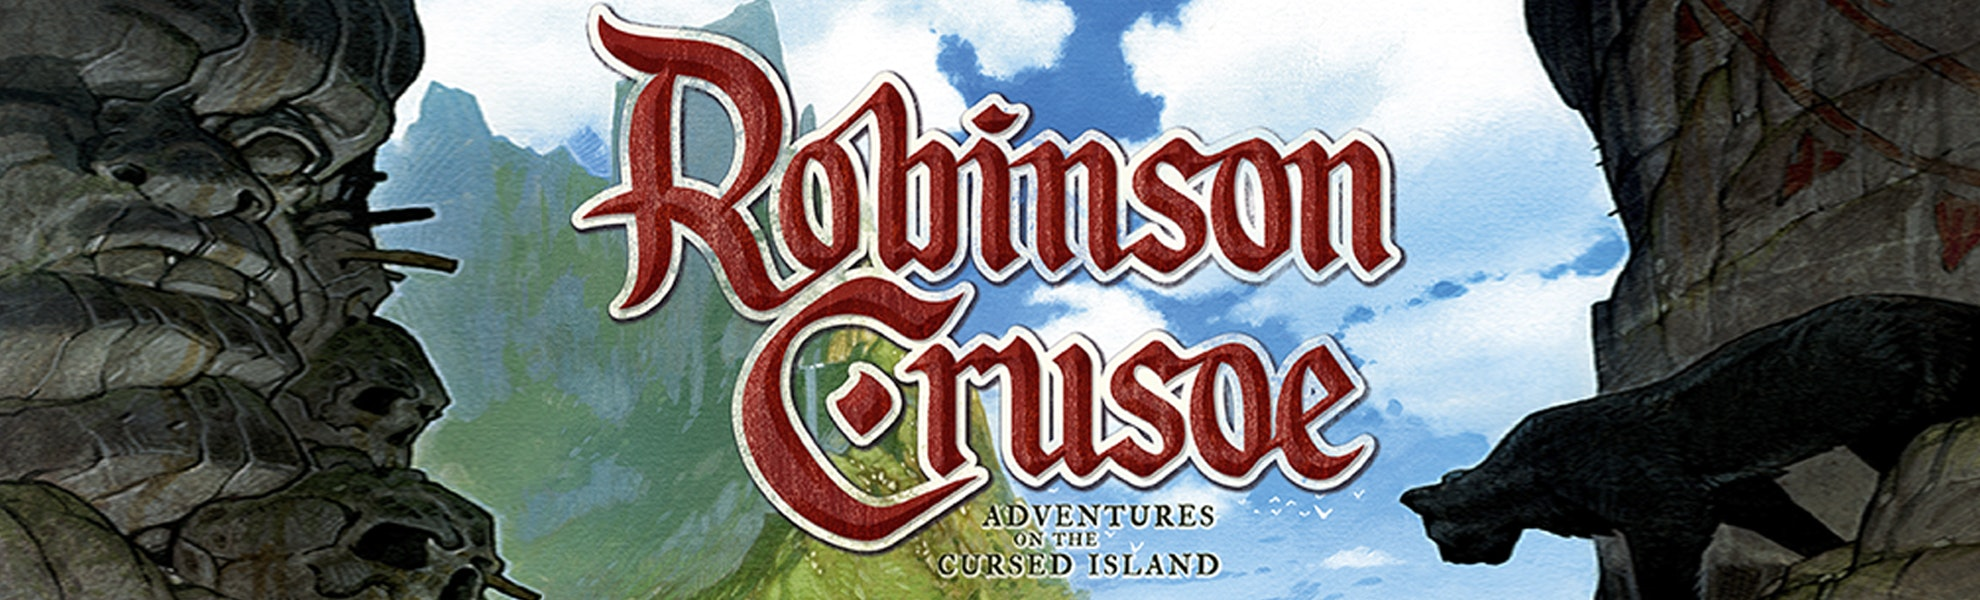 Robinson Crusoe: Adventures on the Cursed Island 2E